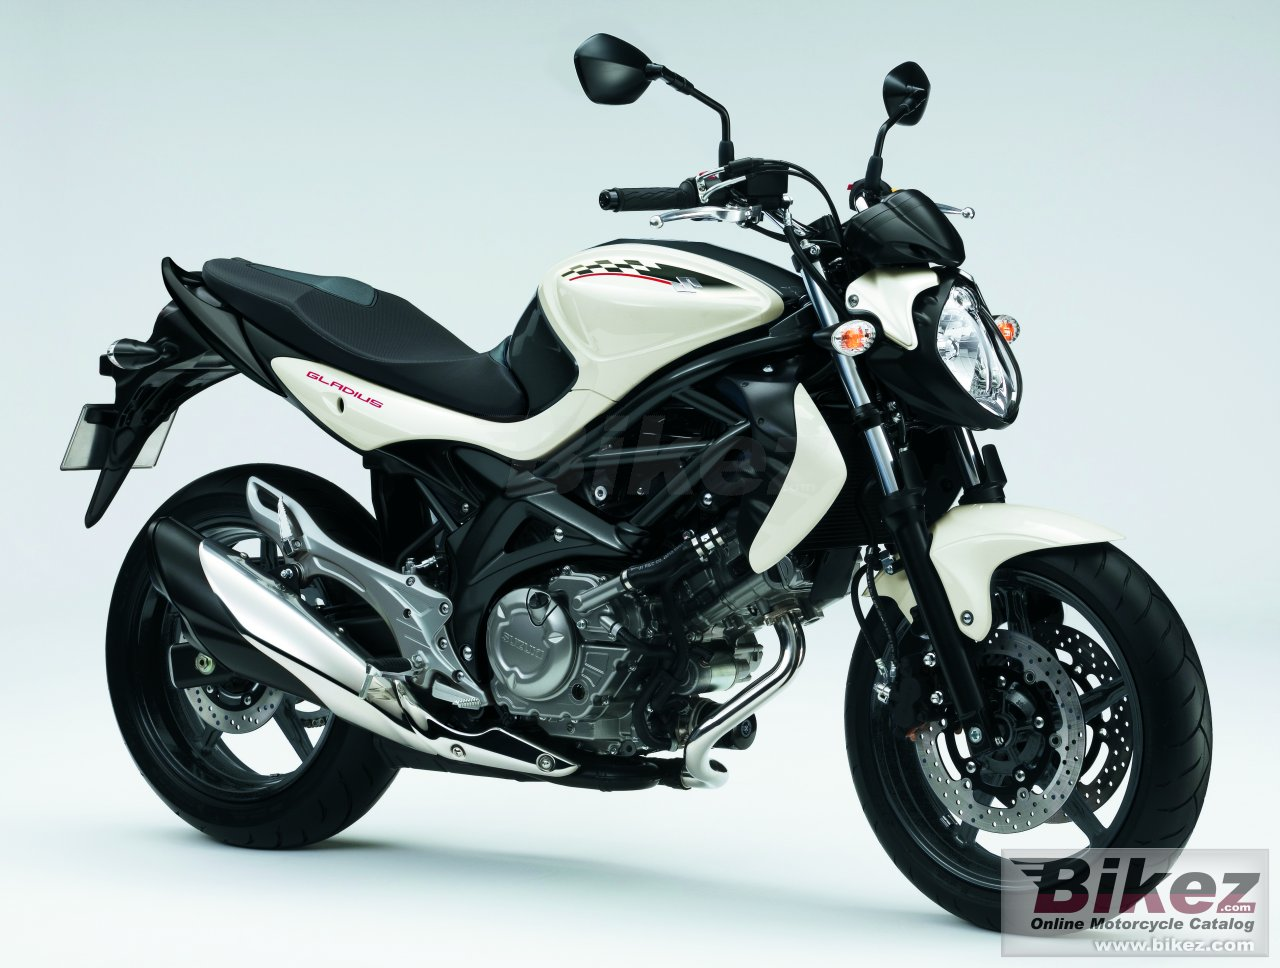 Big Suzuki gladius picture and wallpaper from Bikez.com